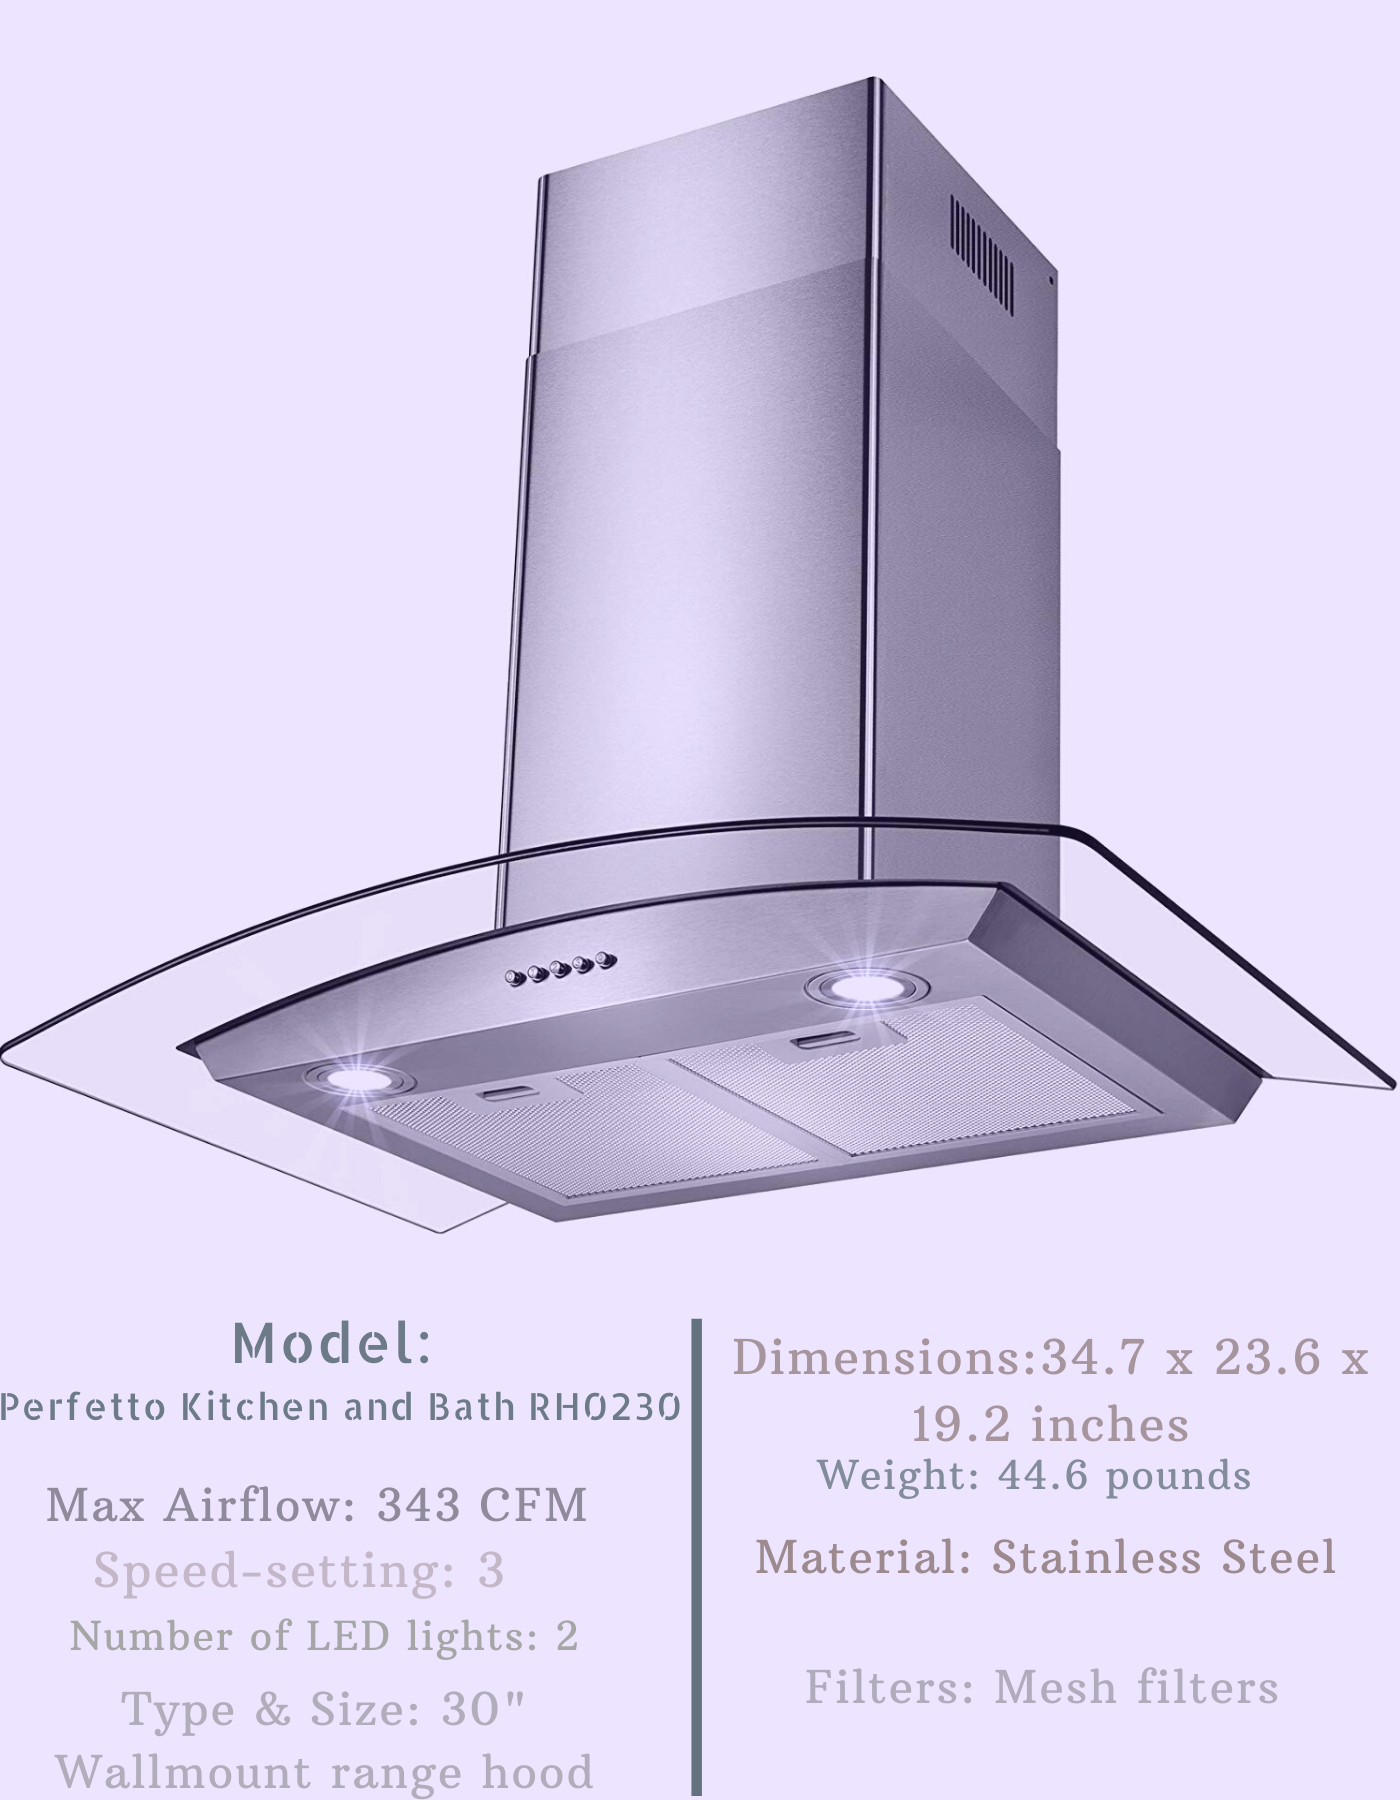 Perfetto Kitchen And Bath 30 Inch Range Hood Wall Mount Range Hood Range Hood Cool Walls